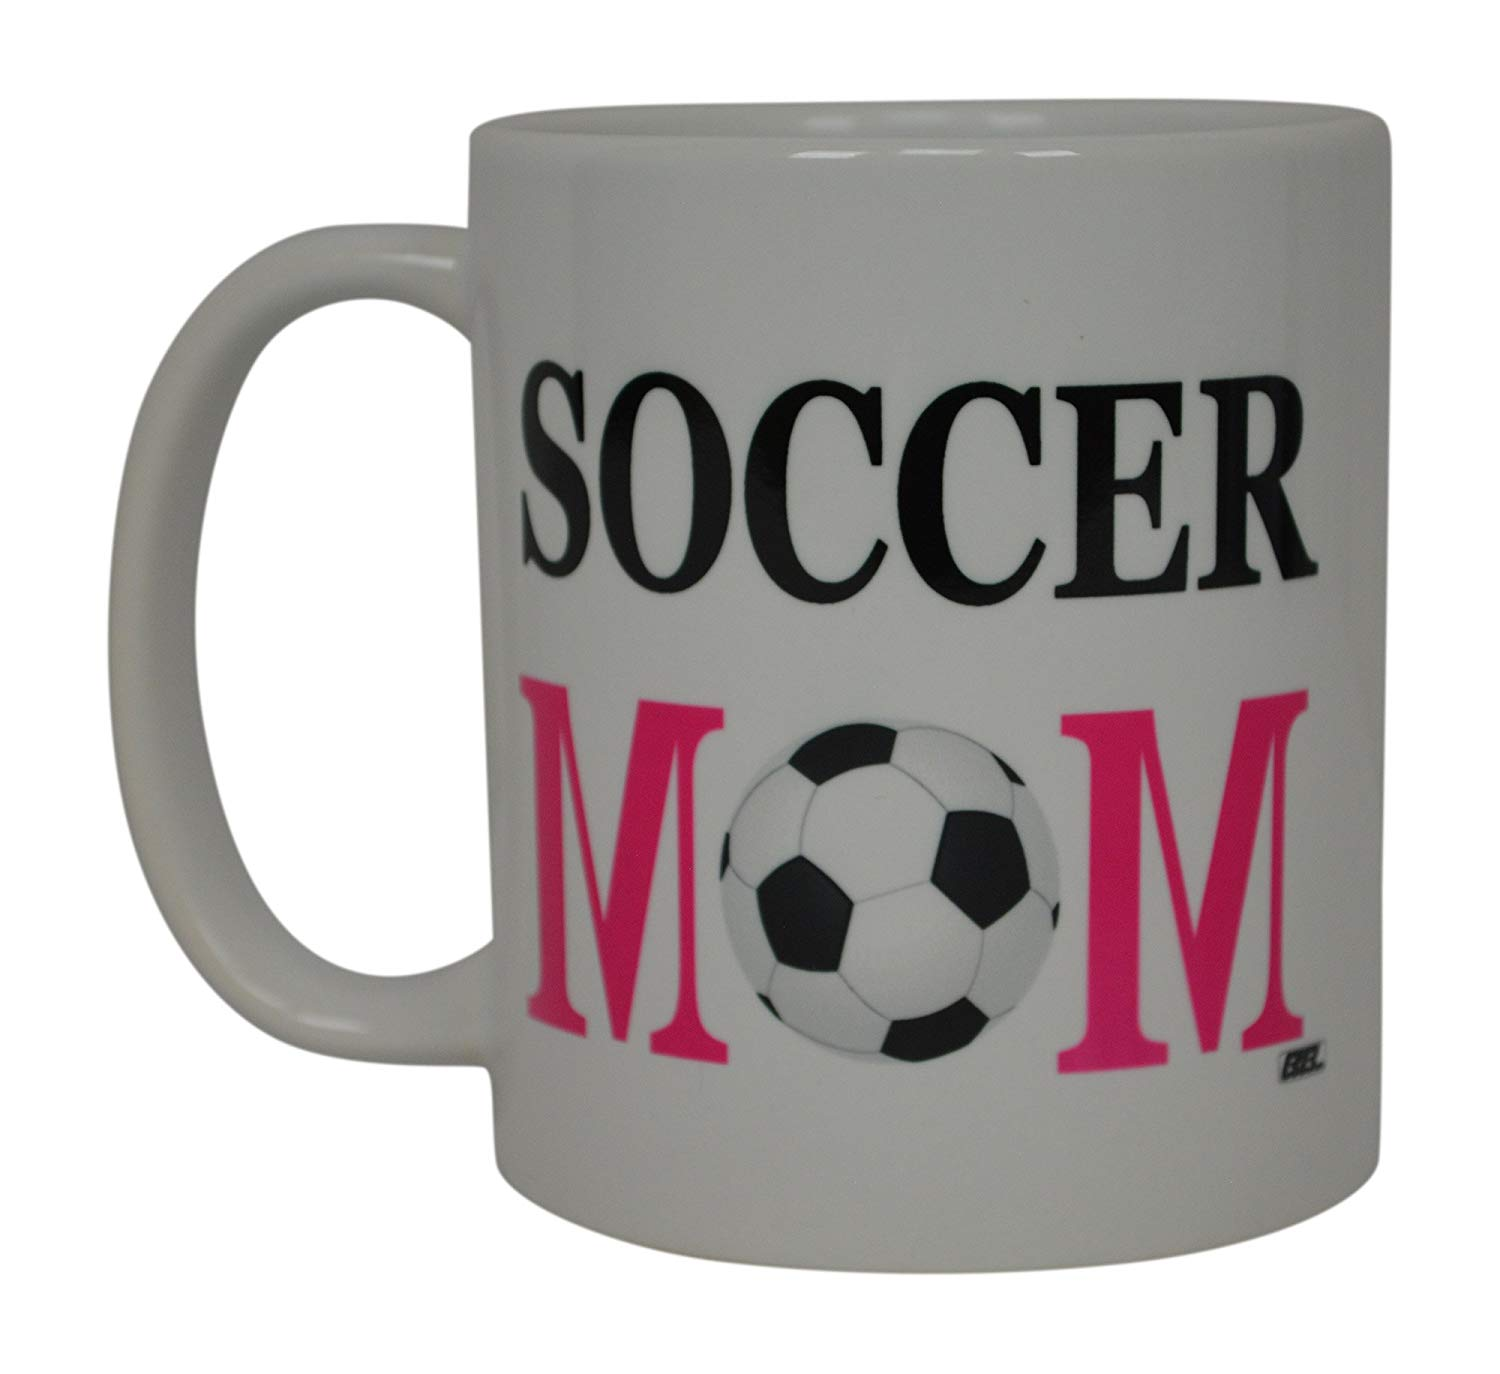 Soccer Mom Coffee Mug Best Mother Novelty Cup Great Gift Idea For Mom Mothers Day Wife Or Parent